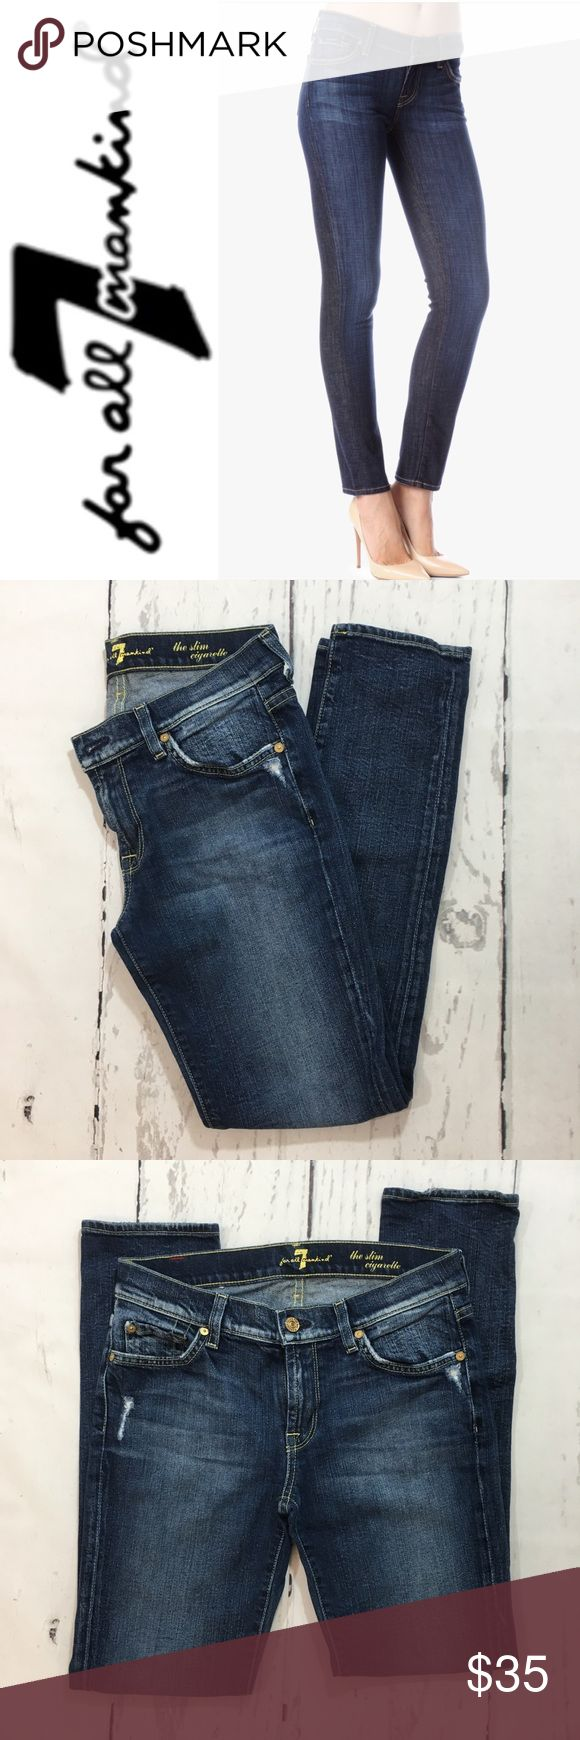 """7 For All Mankind The Slim Cigarette Jeans ✔️98% Cotton•2% Spandex ✔️Inseam: 29"""" ✔️No Holes, Stains or Damages 7 For All Mankind Jeans"""